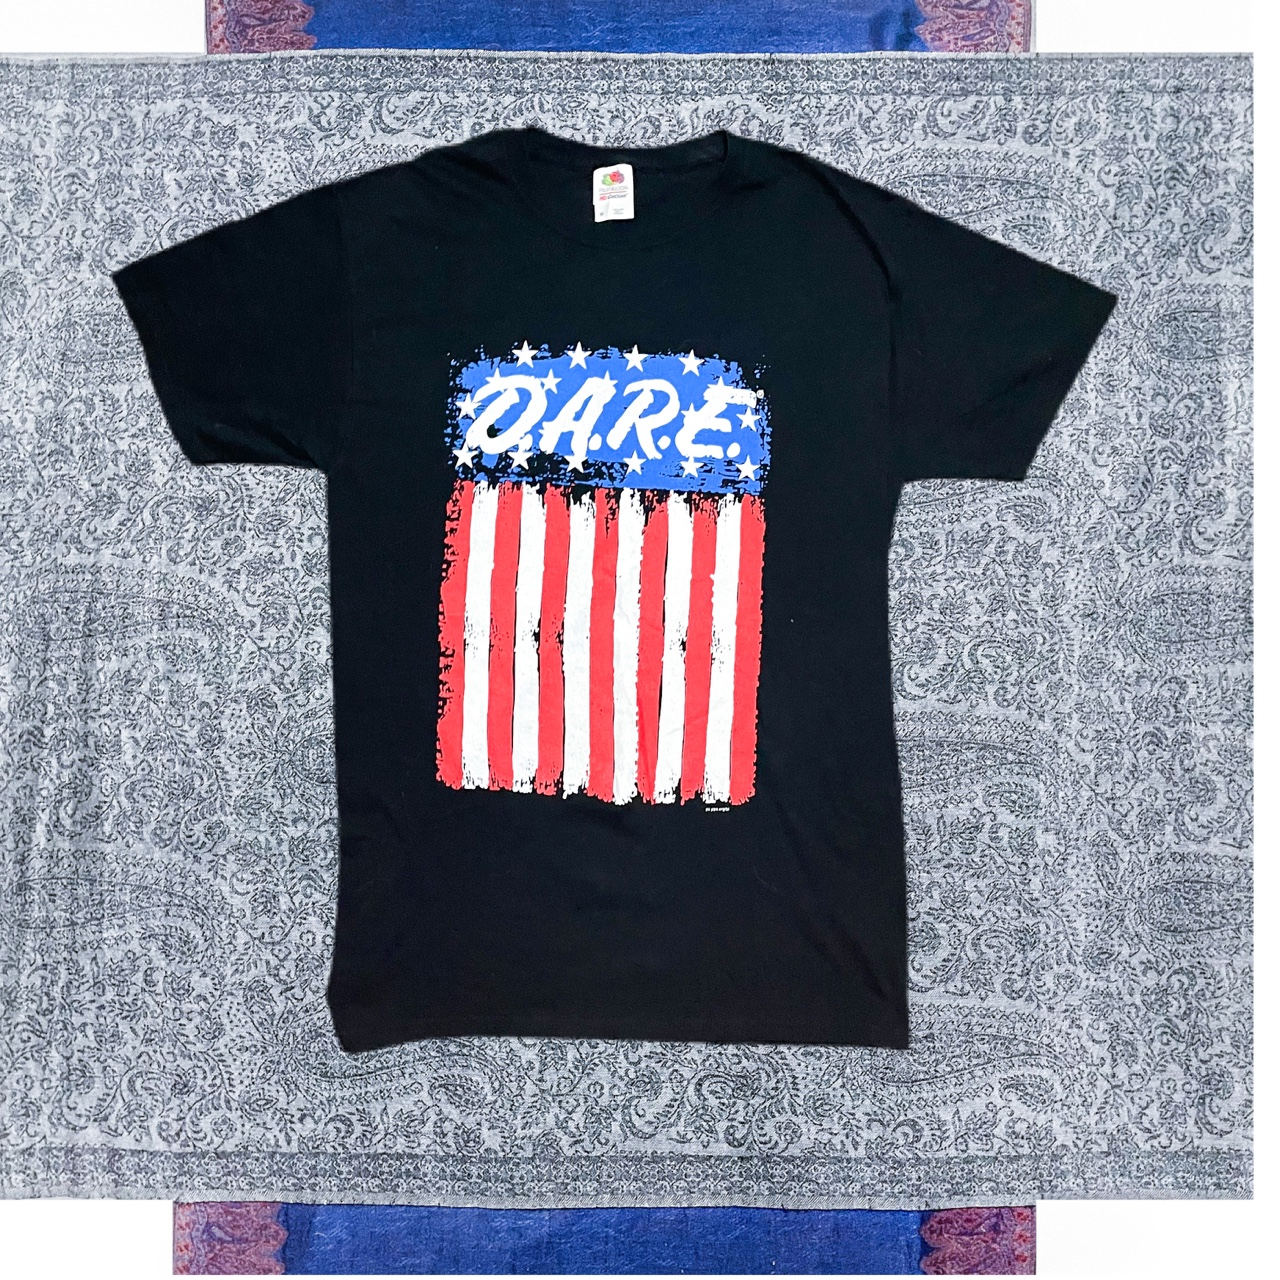 Product Image 1 - Vintage Dare T-shirt   - Adult